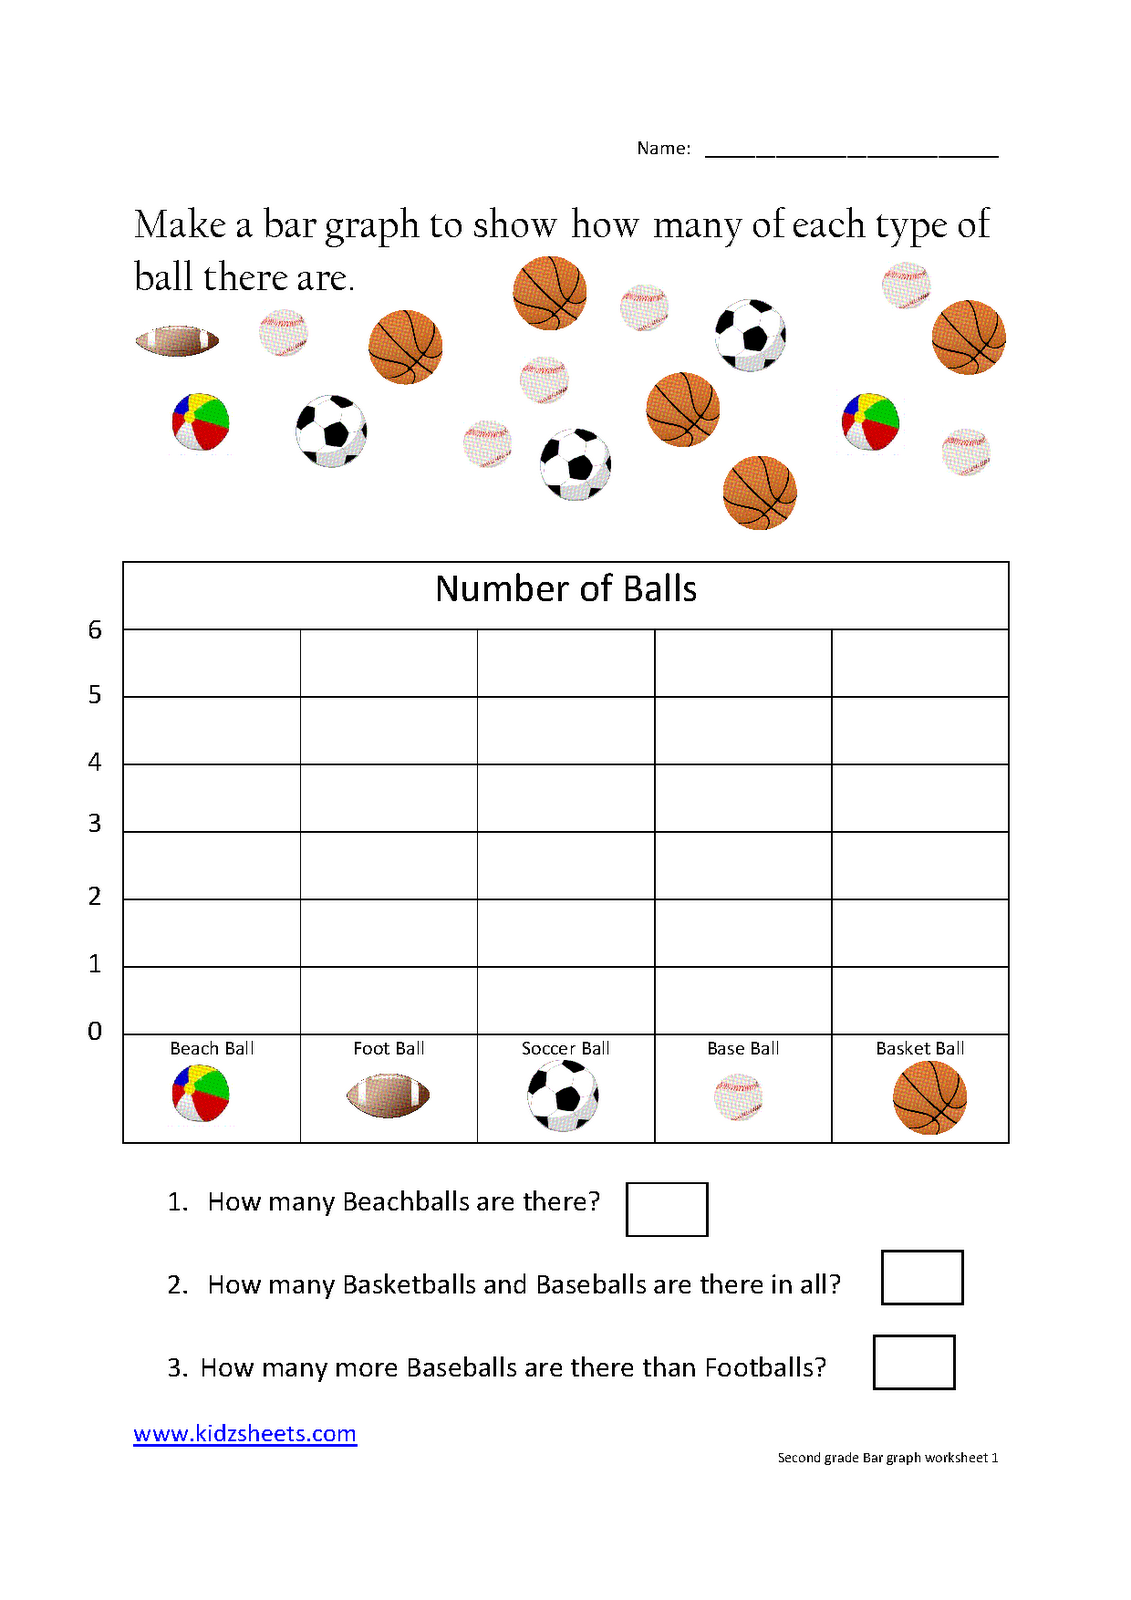 Kidz Worksheets Second Grade Bar Graph Worksheet1 – Worksheets for 2nd Grade